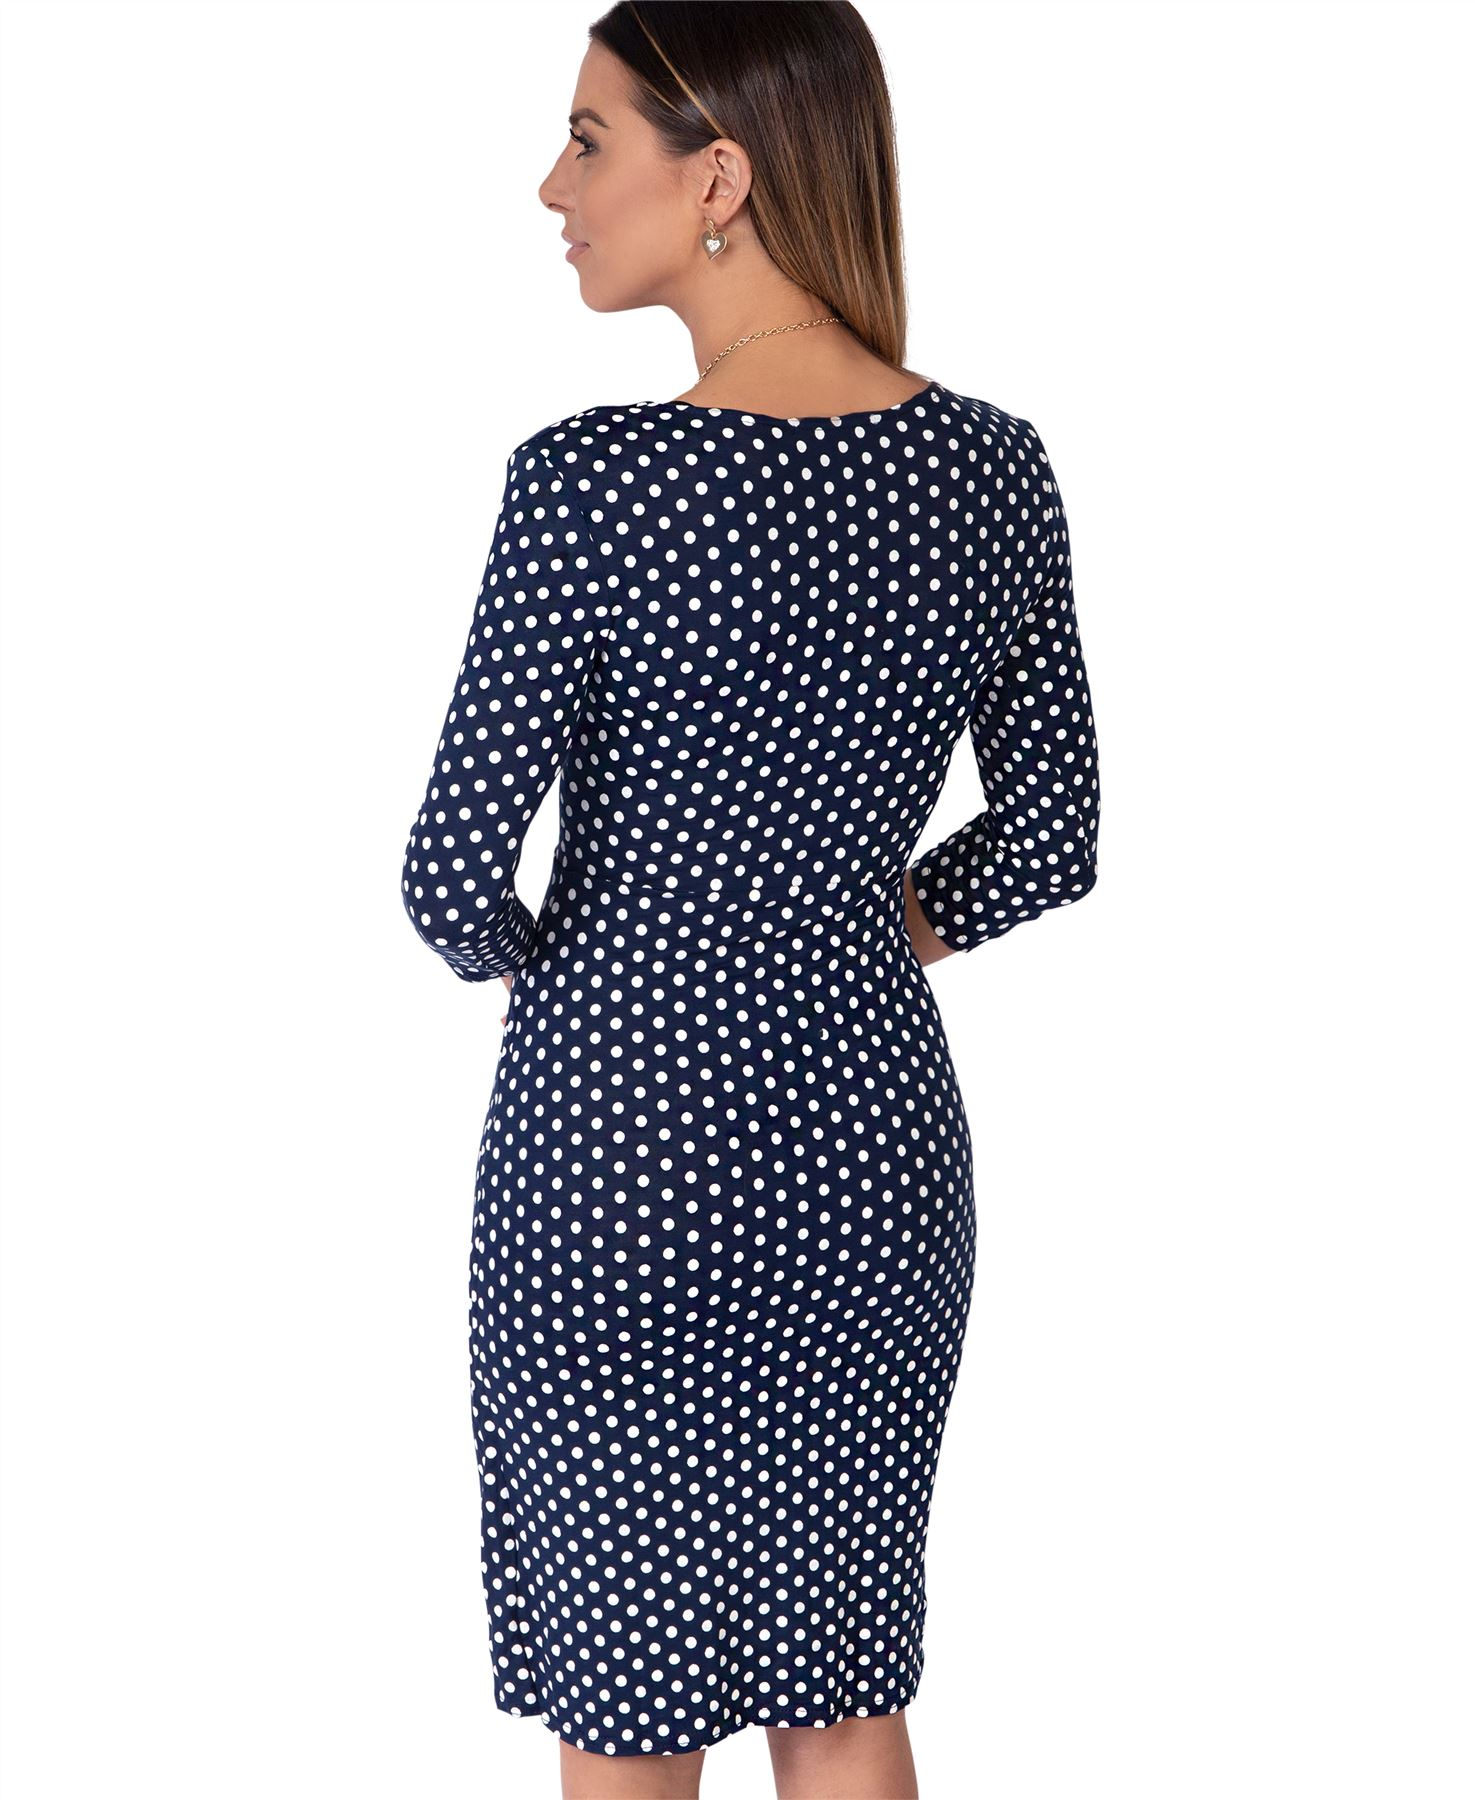 Womens-Polka-Dot-Dress-Pleated-Skirt-Wrap-Front-Midi-V-Neck-Top-Swing-Party thumbnail 22